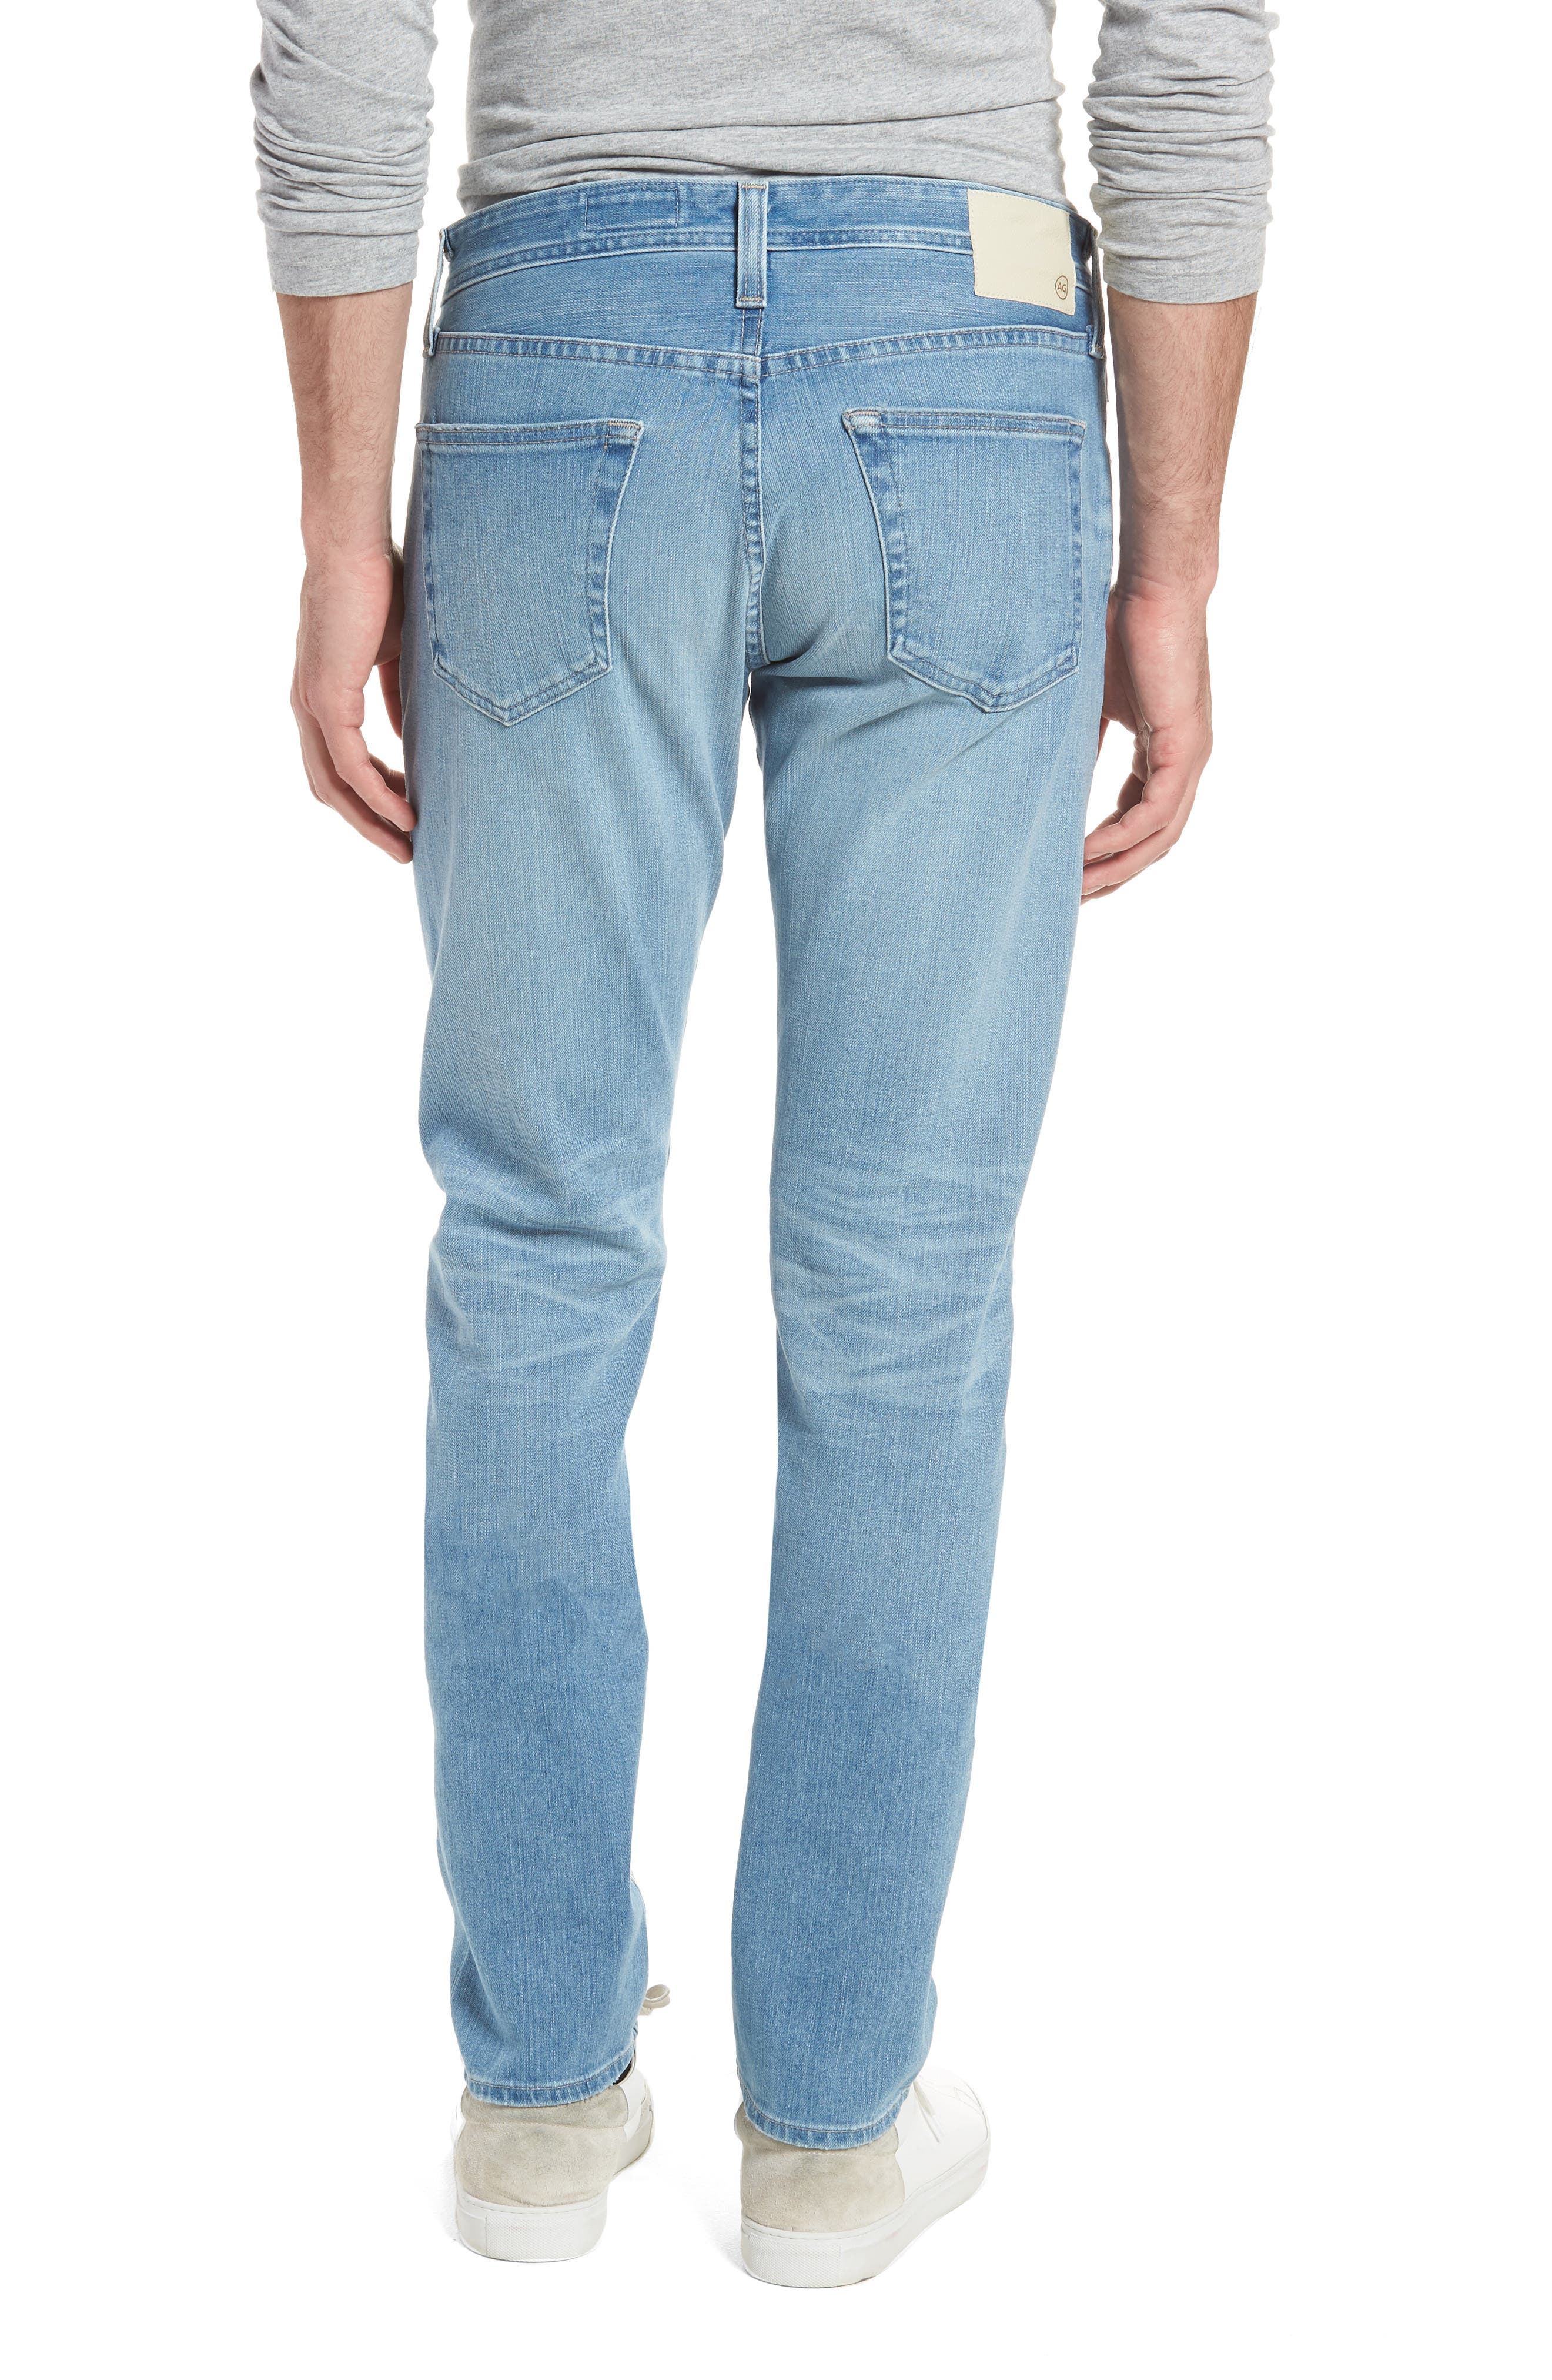 Tellis Slim Fit Jeans,                             Alternate thumbnail 2, color,                             19 Years Channel